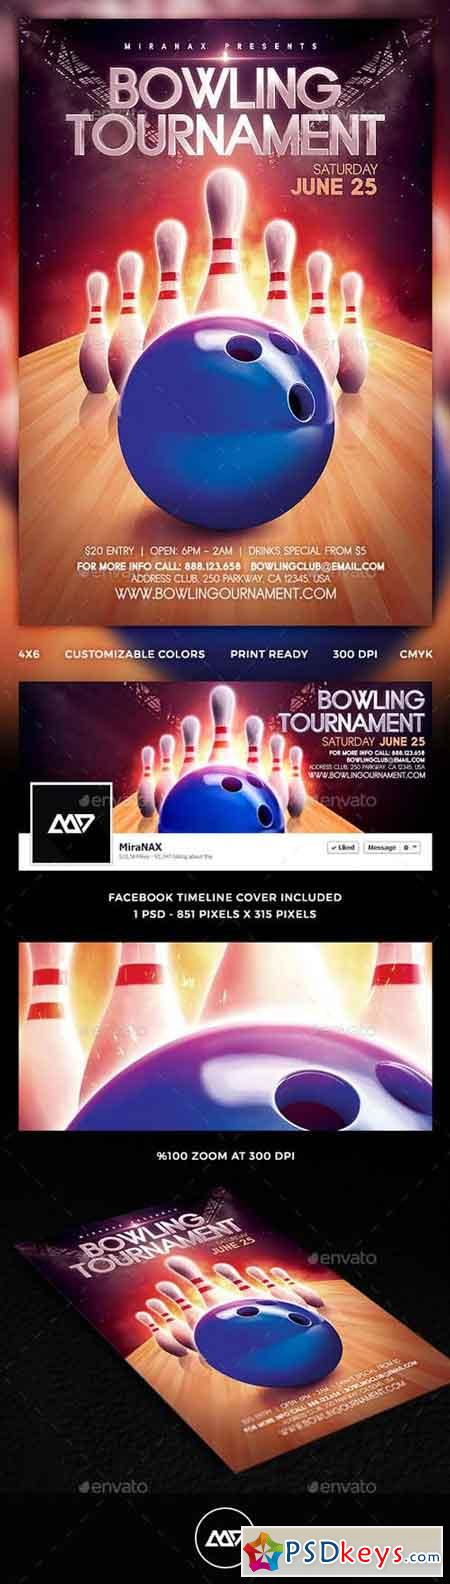 Bowling Flyer 11841764  Bowling Flyer Template Free